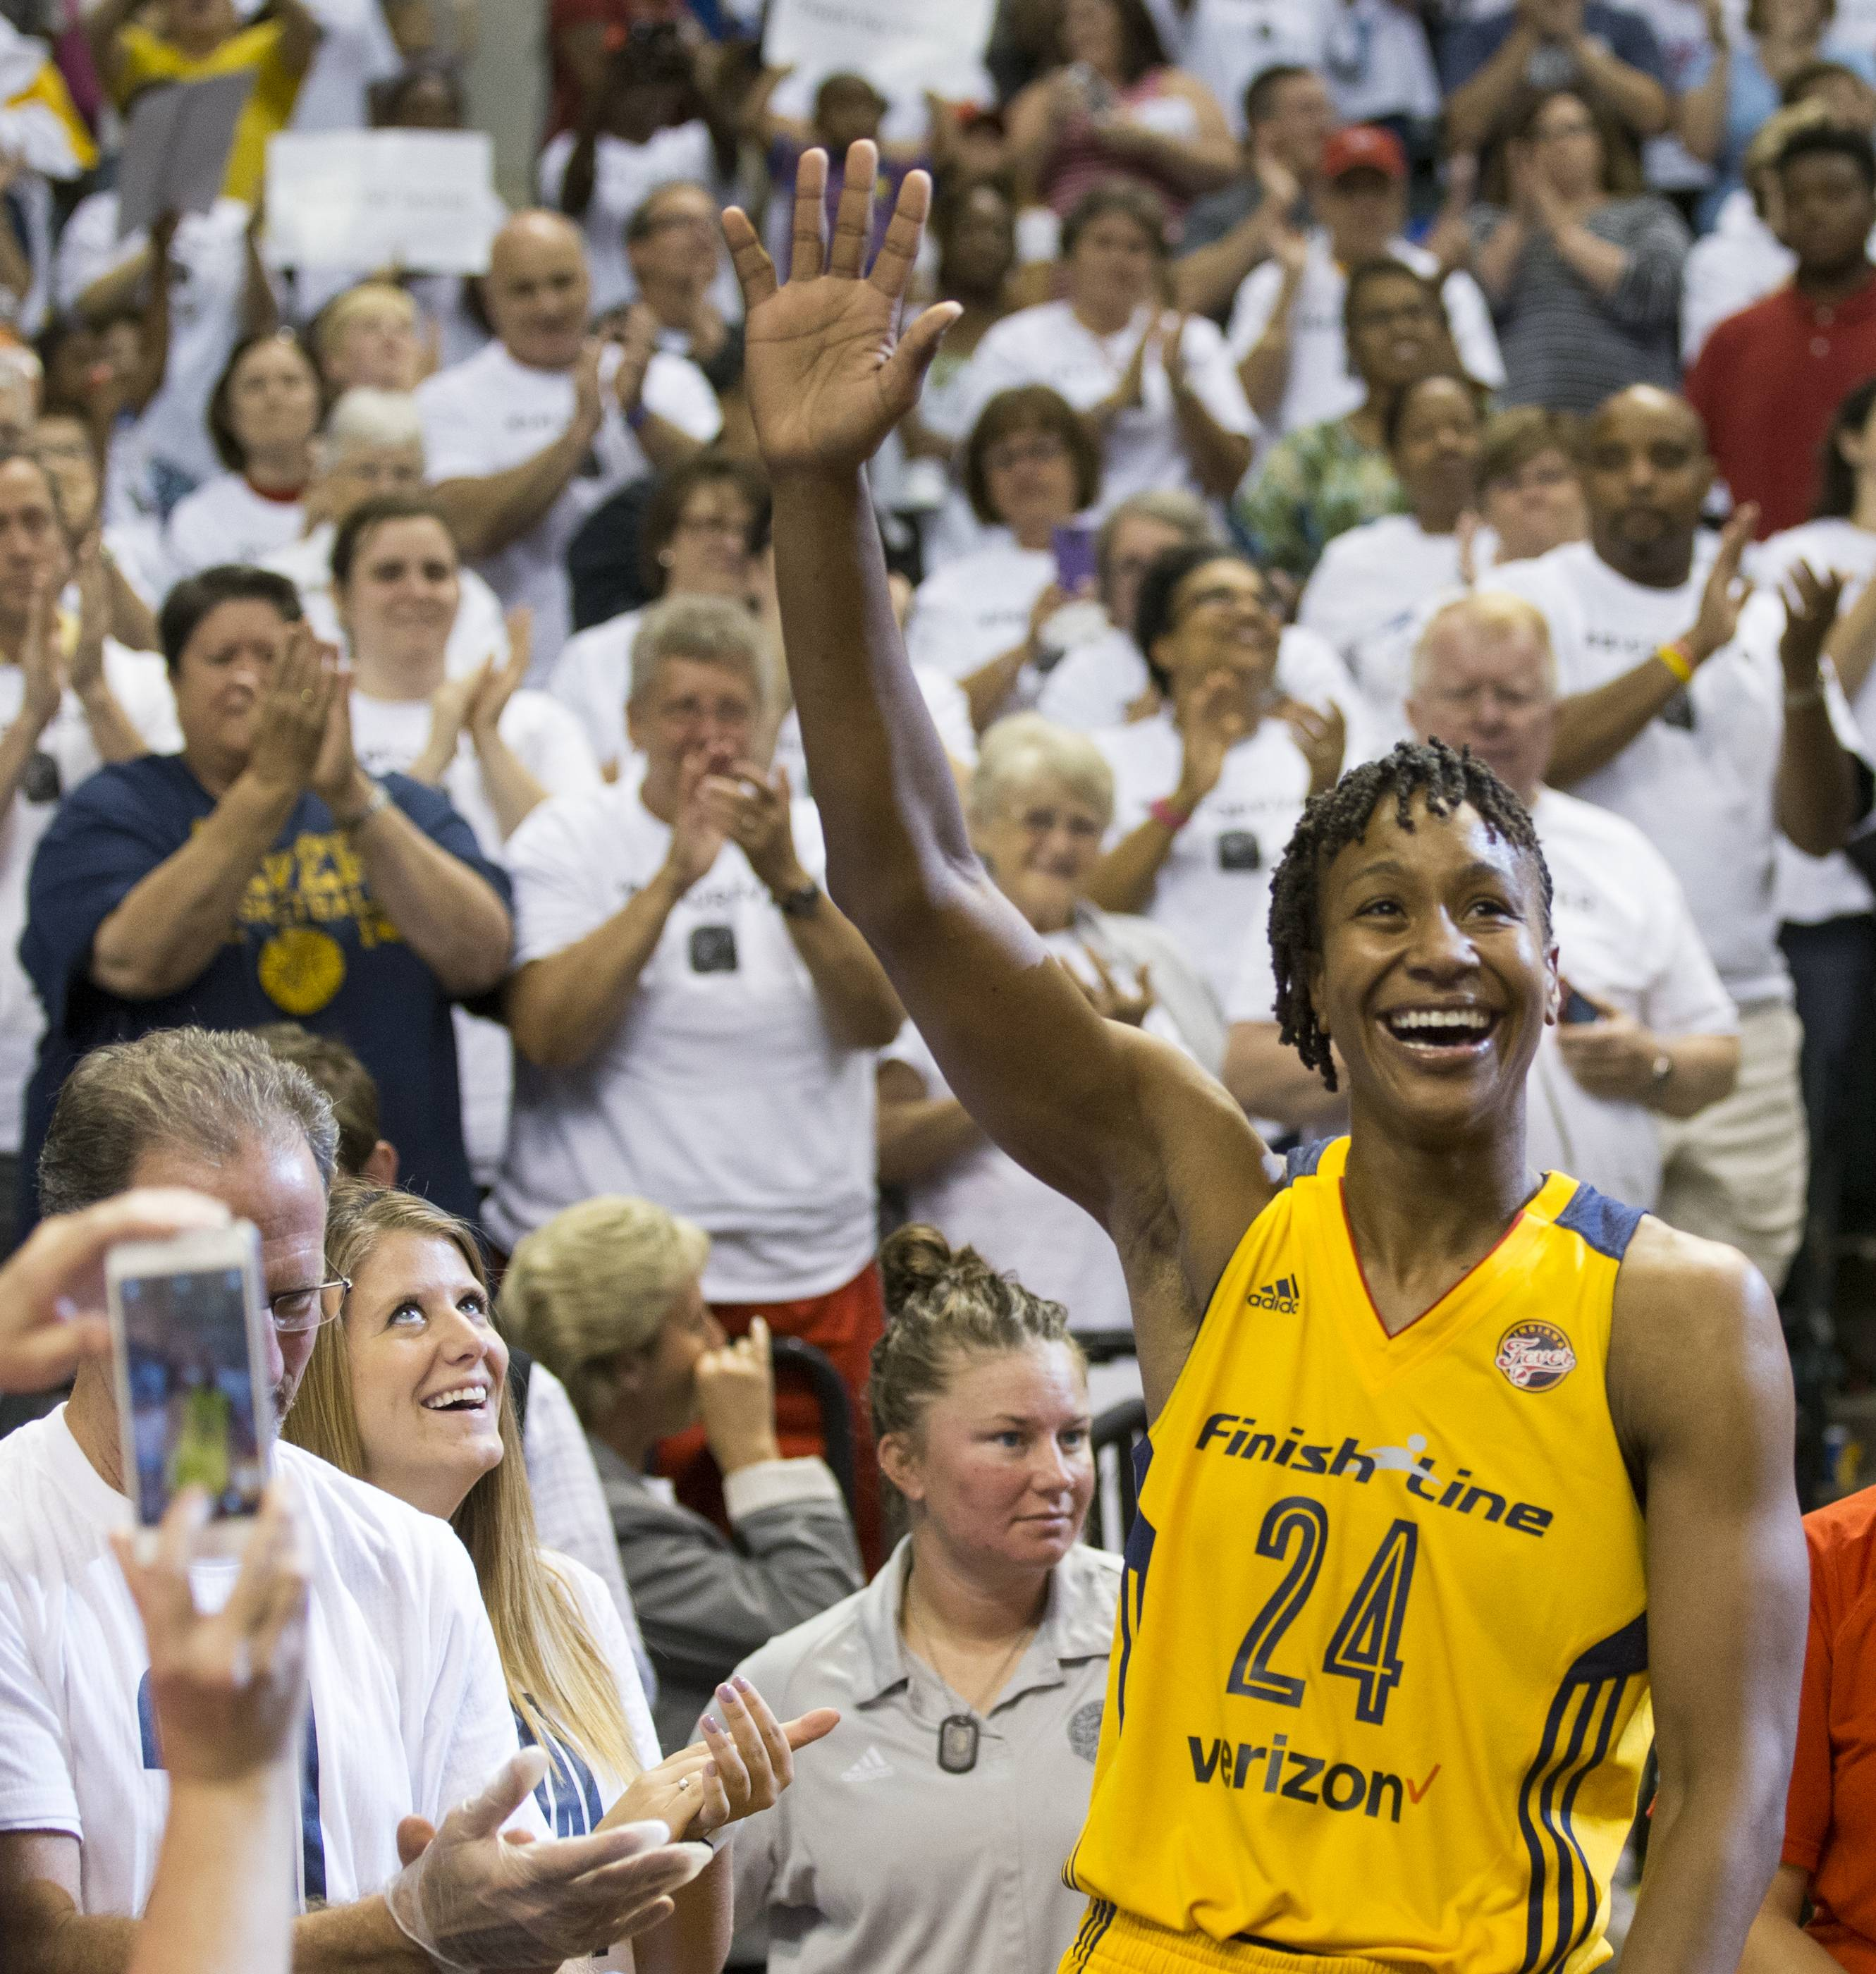 Tamika Catchings acknowledges the crowd following action against the Dallas Wings, Bankers Life Fieldhouse, Indianapolis, Sunday, Sept. 18, 2016. Catchings is playing her last regular season game before retiring. Indiana won 83-60.